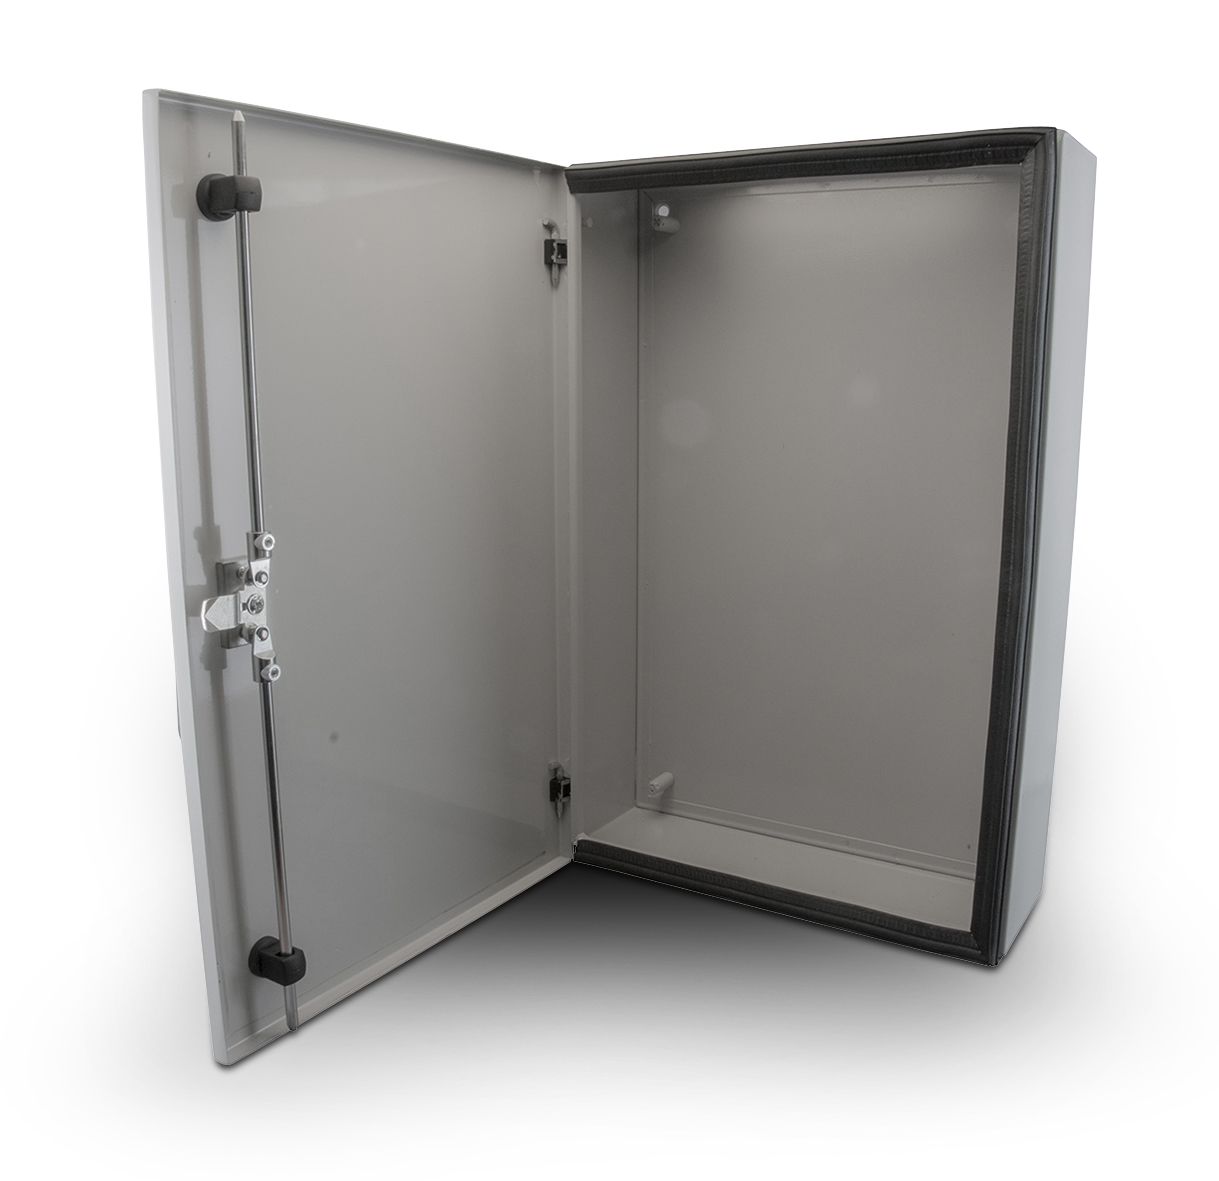 Modular multipoint locking system allows bespoke security levels to be selected